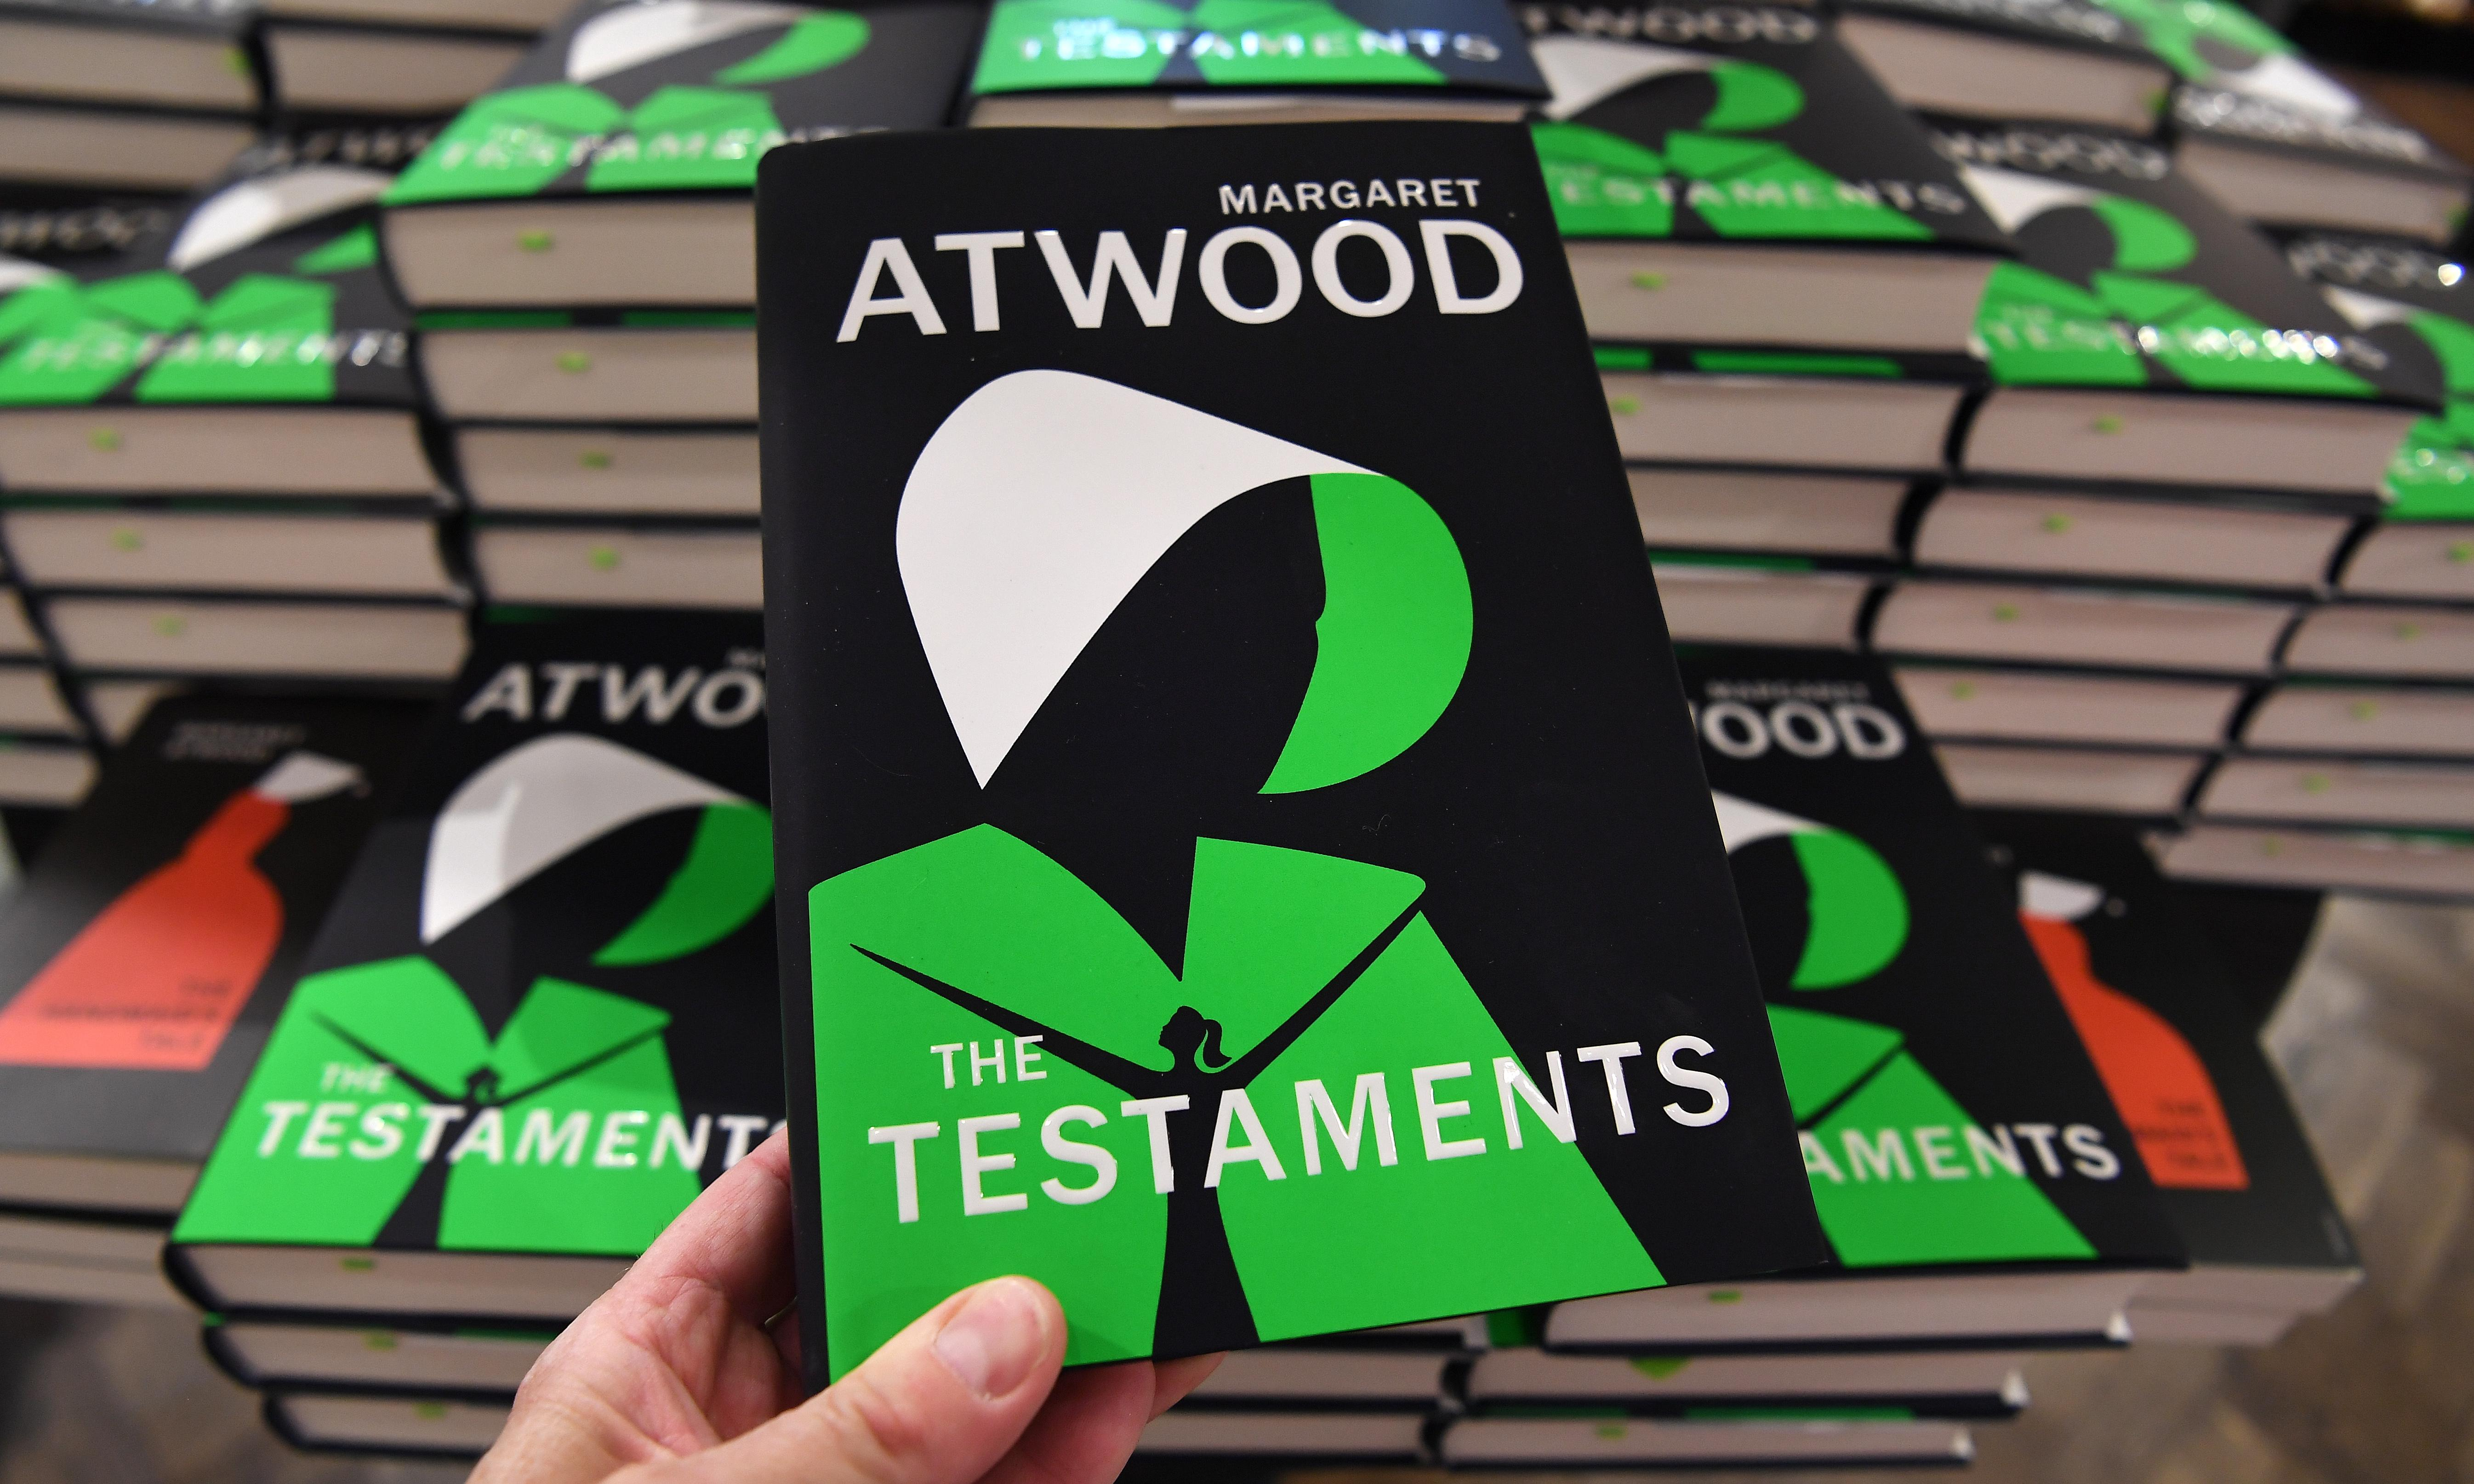 Handmaid's sales: Margaret Atwood's The Testaments is immediate hit